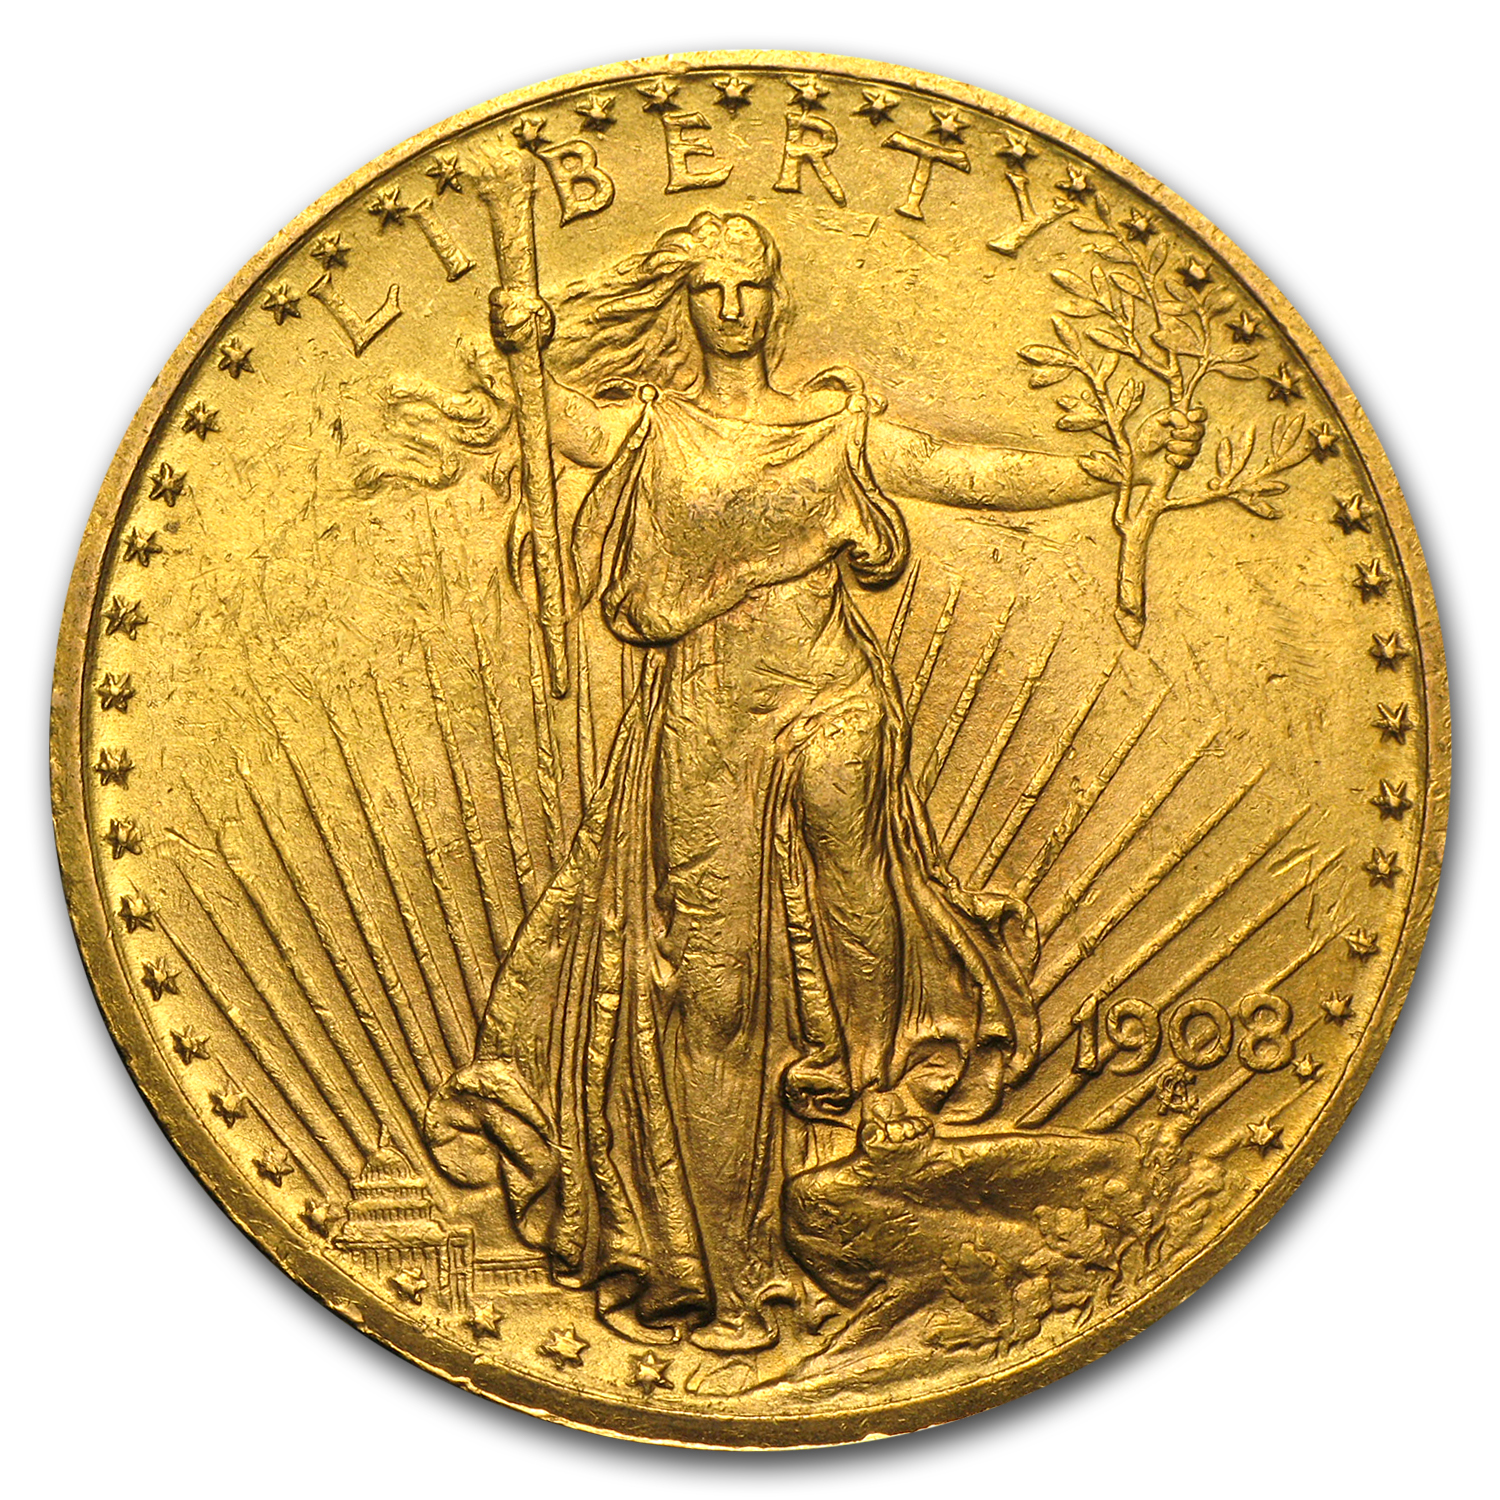 1908 $20 St. Gaudens Gold Double Eagle - W/Motto (AU)